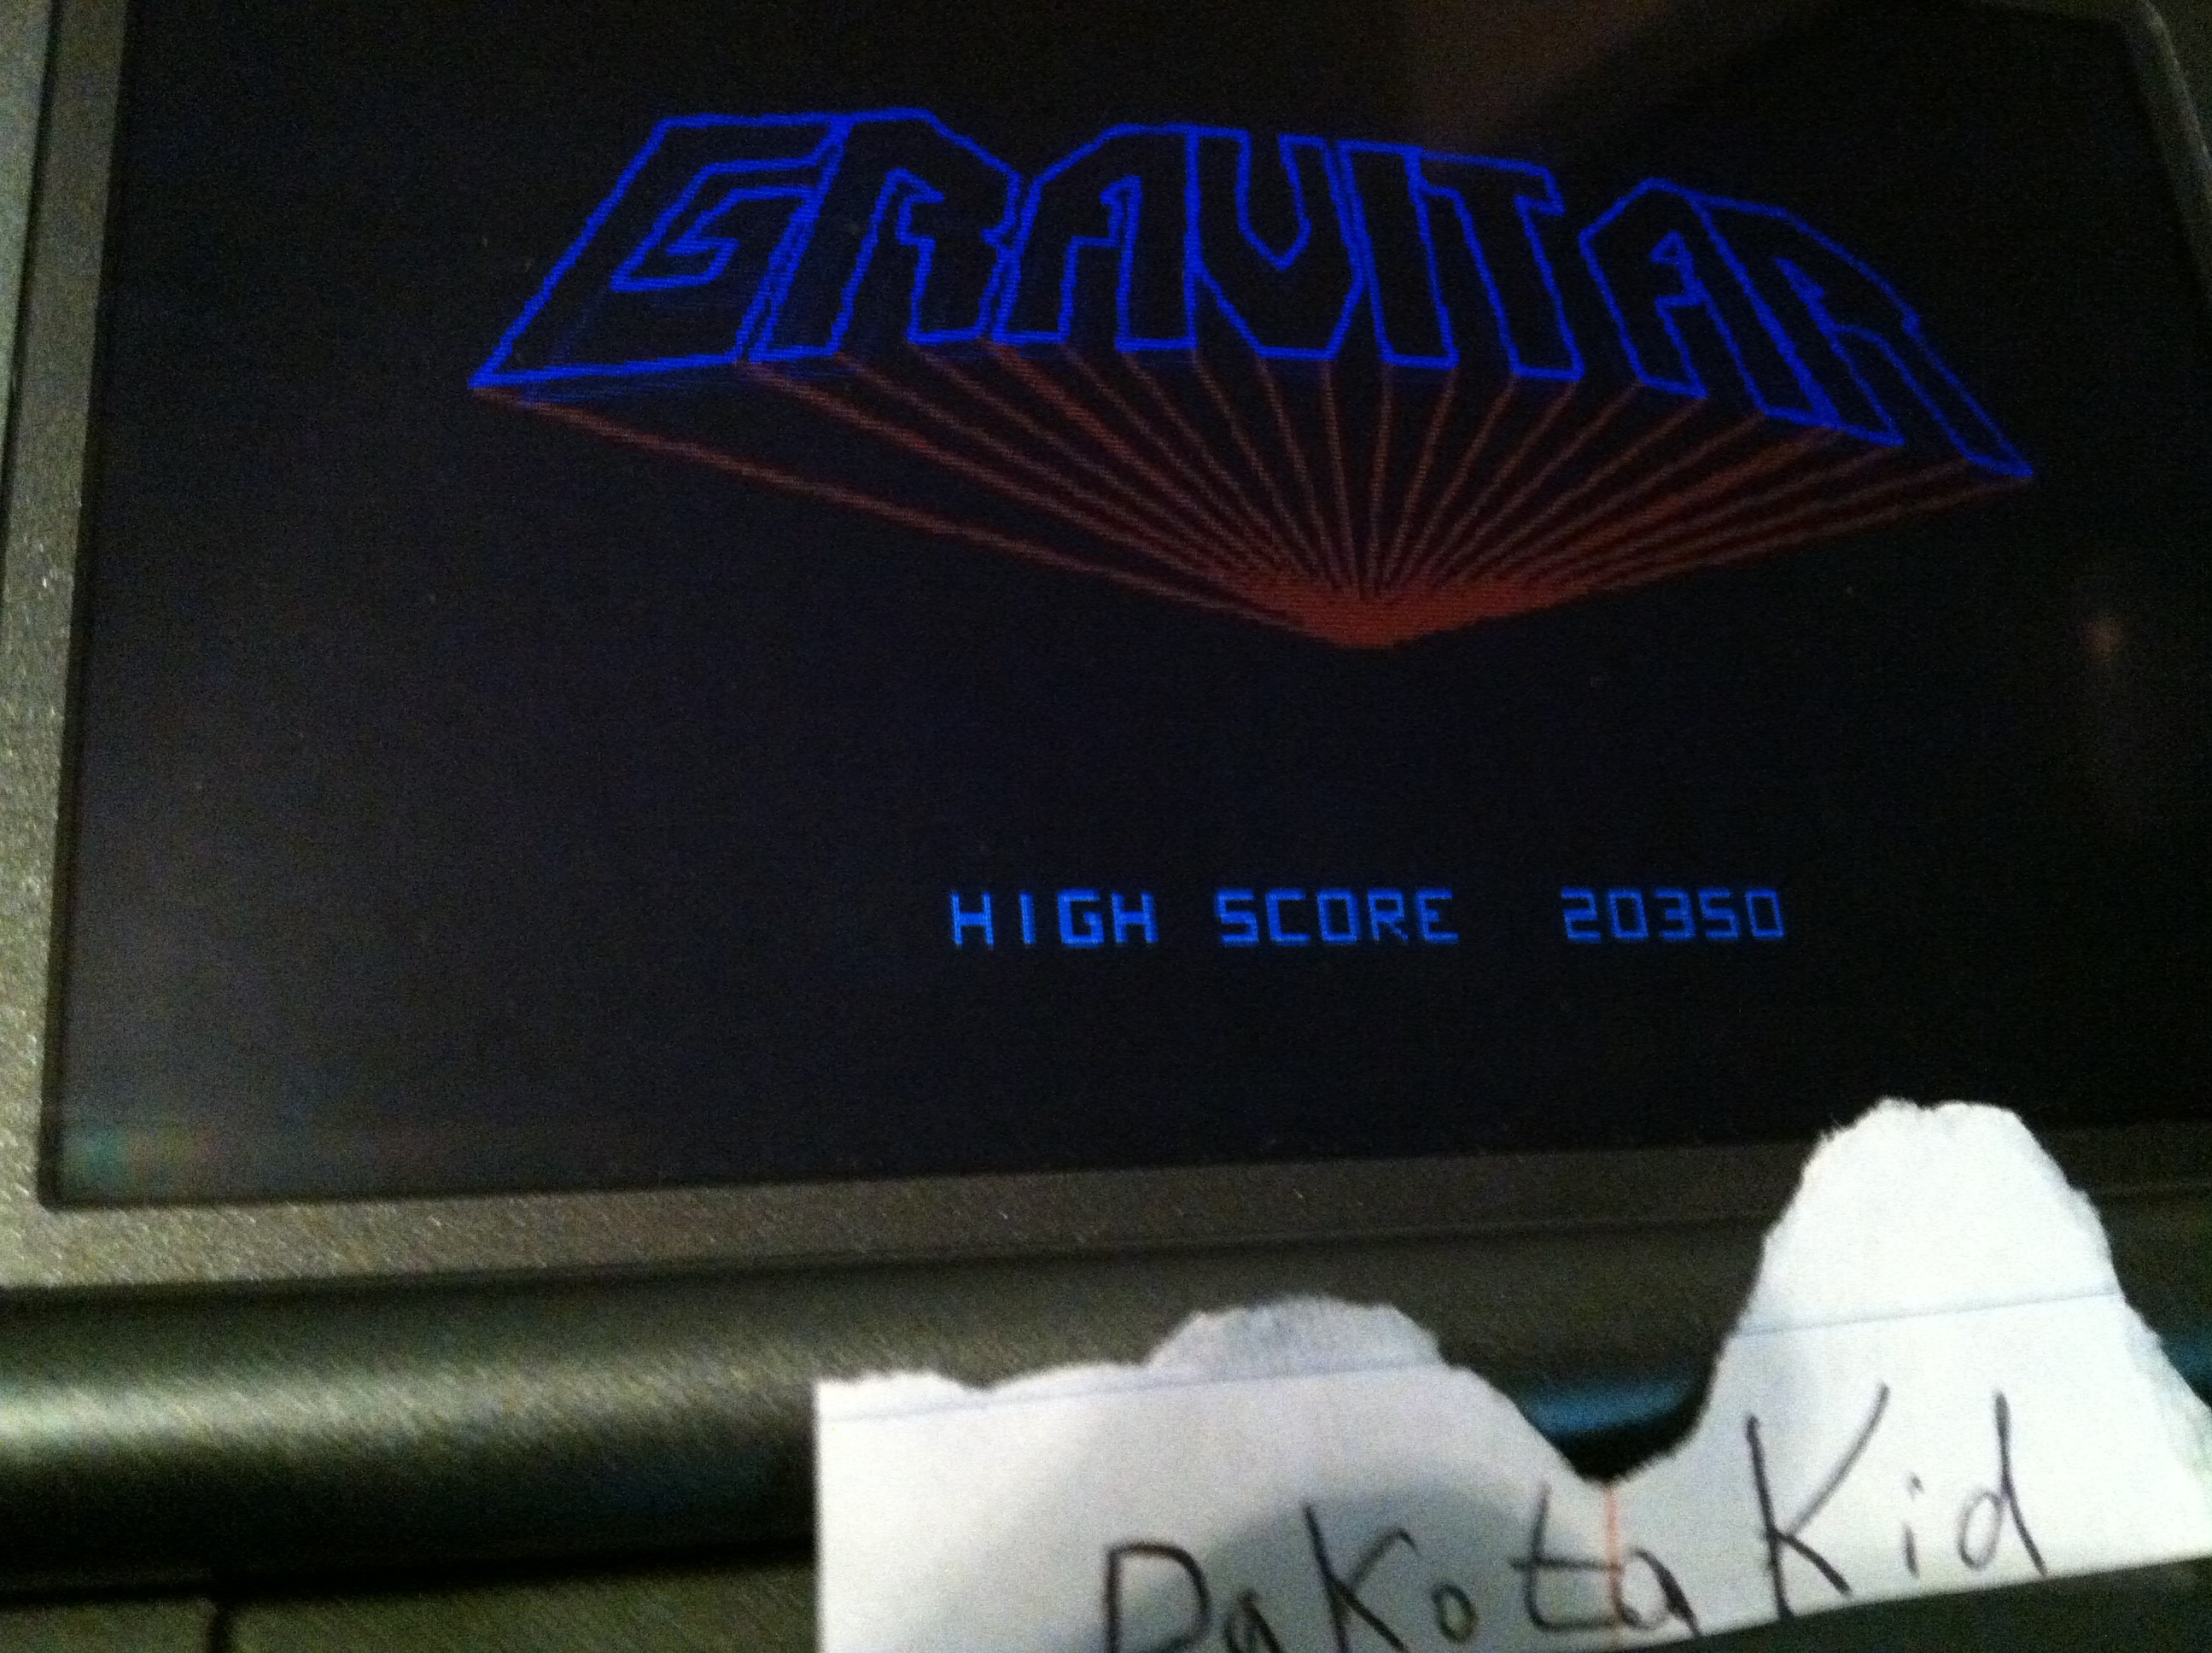 DakotaKid: Retro Atari Classics: Gravitar [Arcade] (Nintendo DS) 20,350 points on 2017-11-30 17:51:23